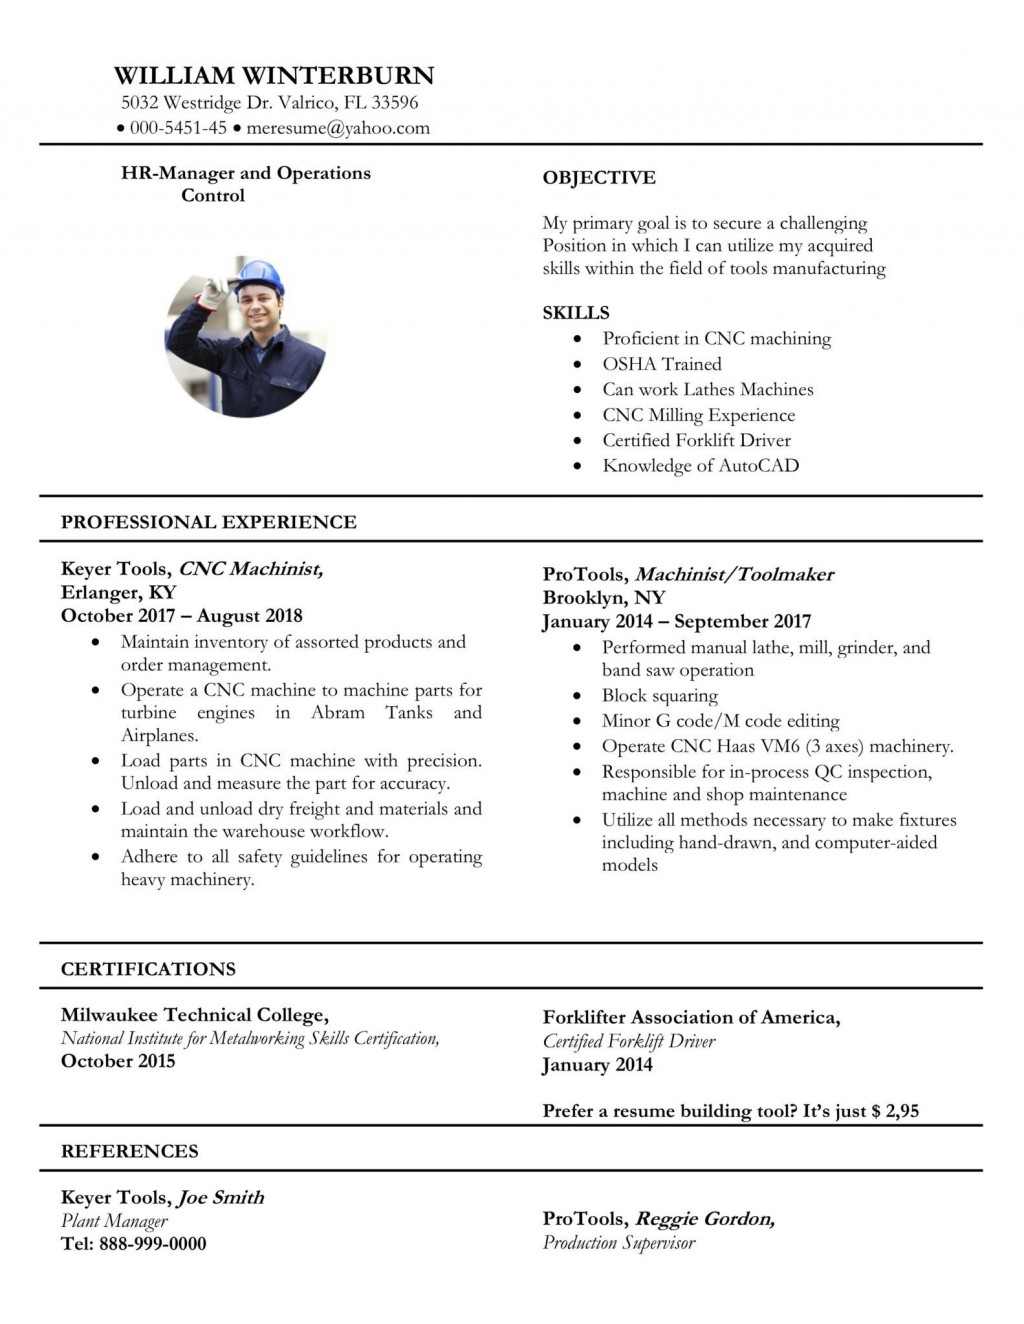 007 Magnificent Resume Template Word 2003 Free Download High Resolution  DownloadsLarge